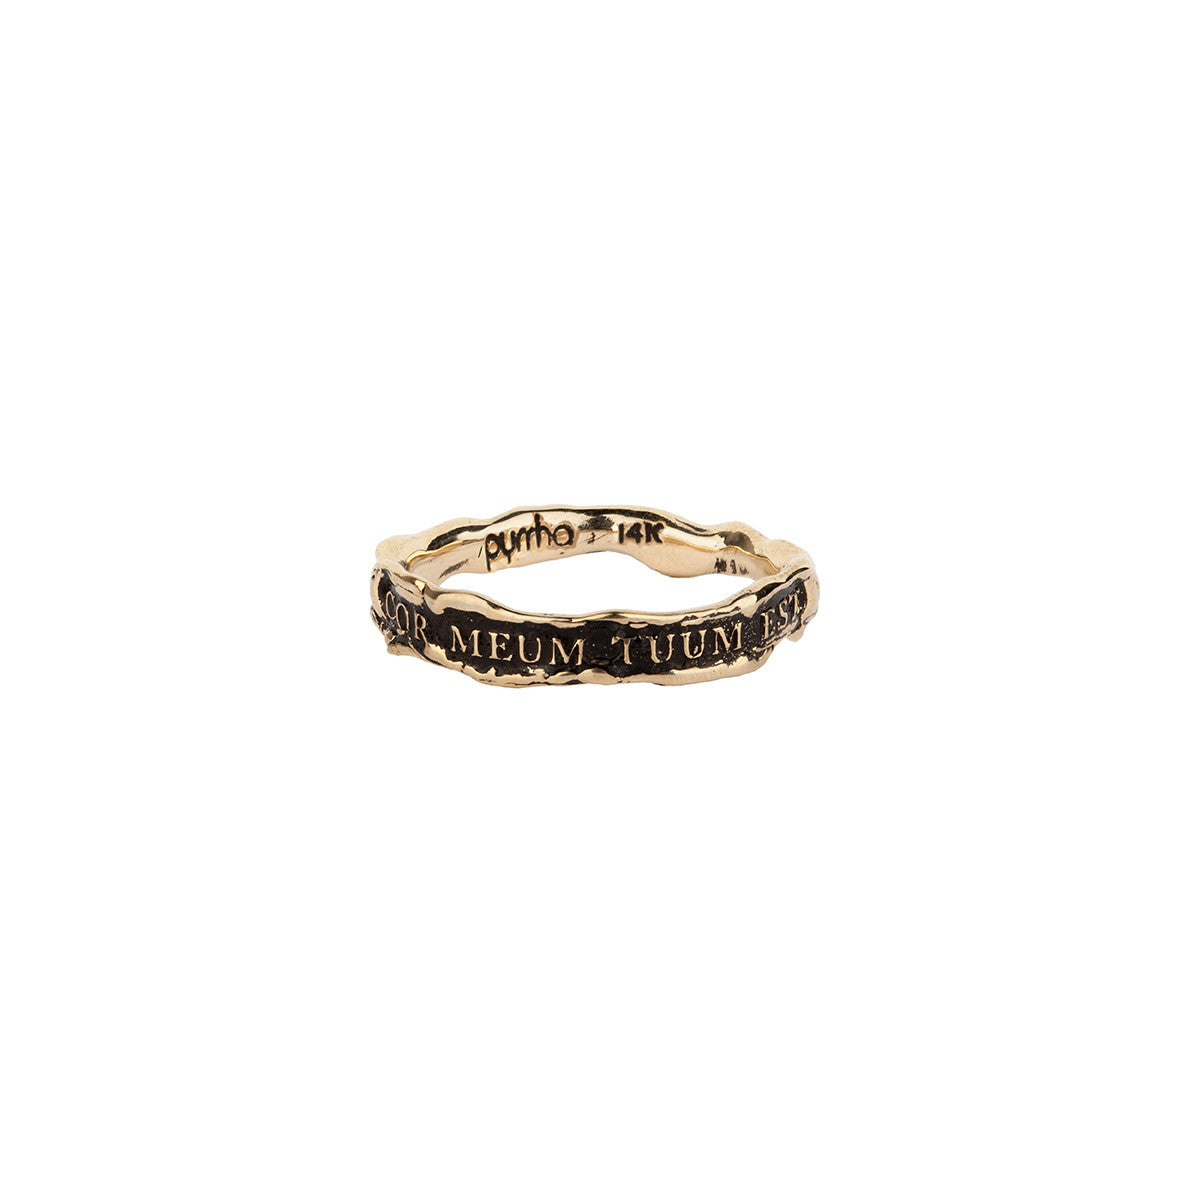 Cor Meum Tuum Est (My Heart is Yours) Narrow 14K Gold Textured Band Ring